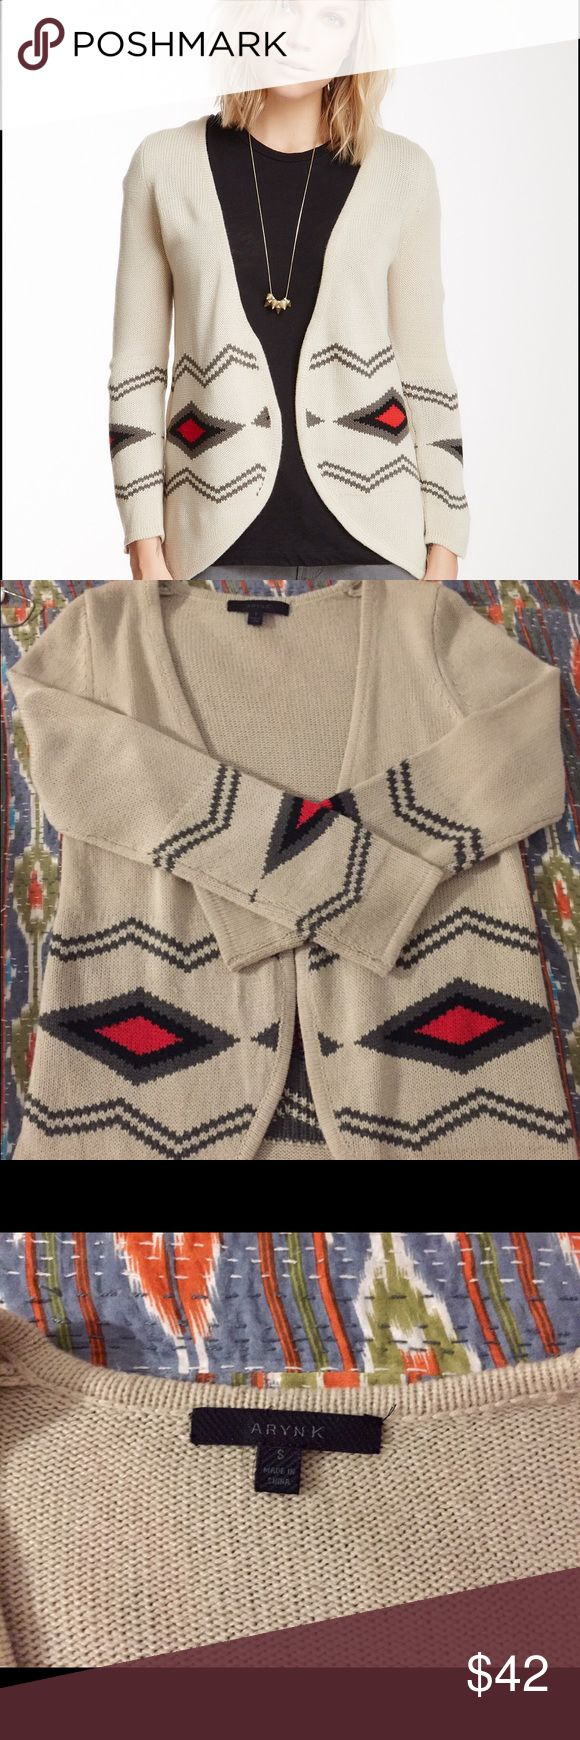 Aryn K Tribal Print Knit Sweater Beautiful tribal print sweater in cream, red, black and grey.  Size S but fits more like and XS with sleeves that hit just below the elbow. Aryn K Sweaters